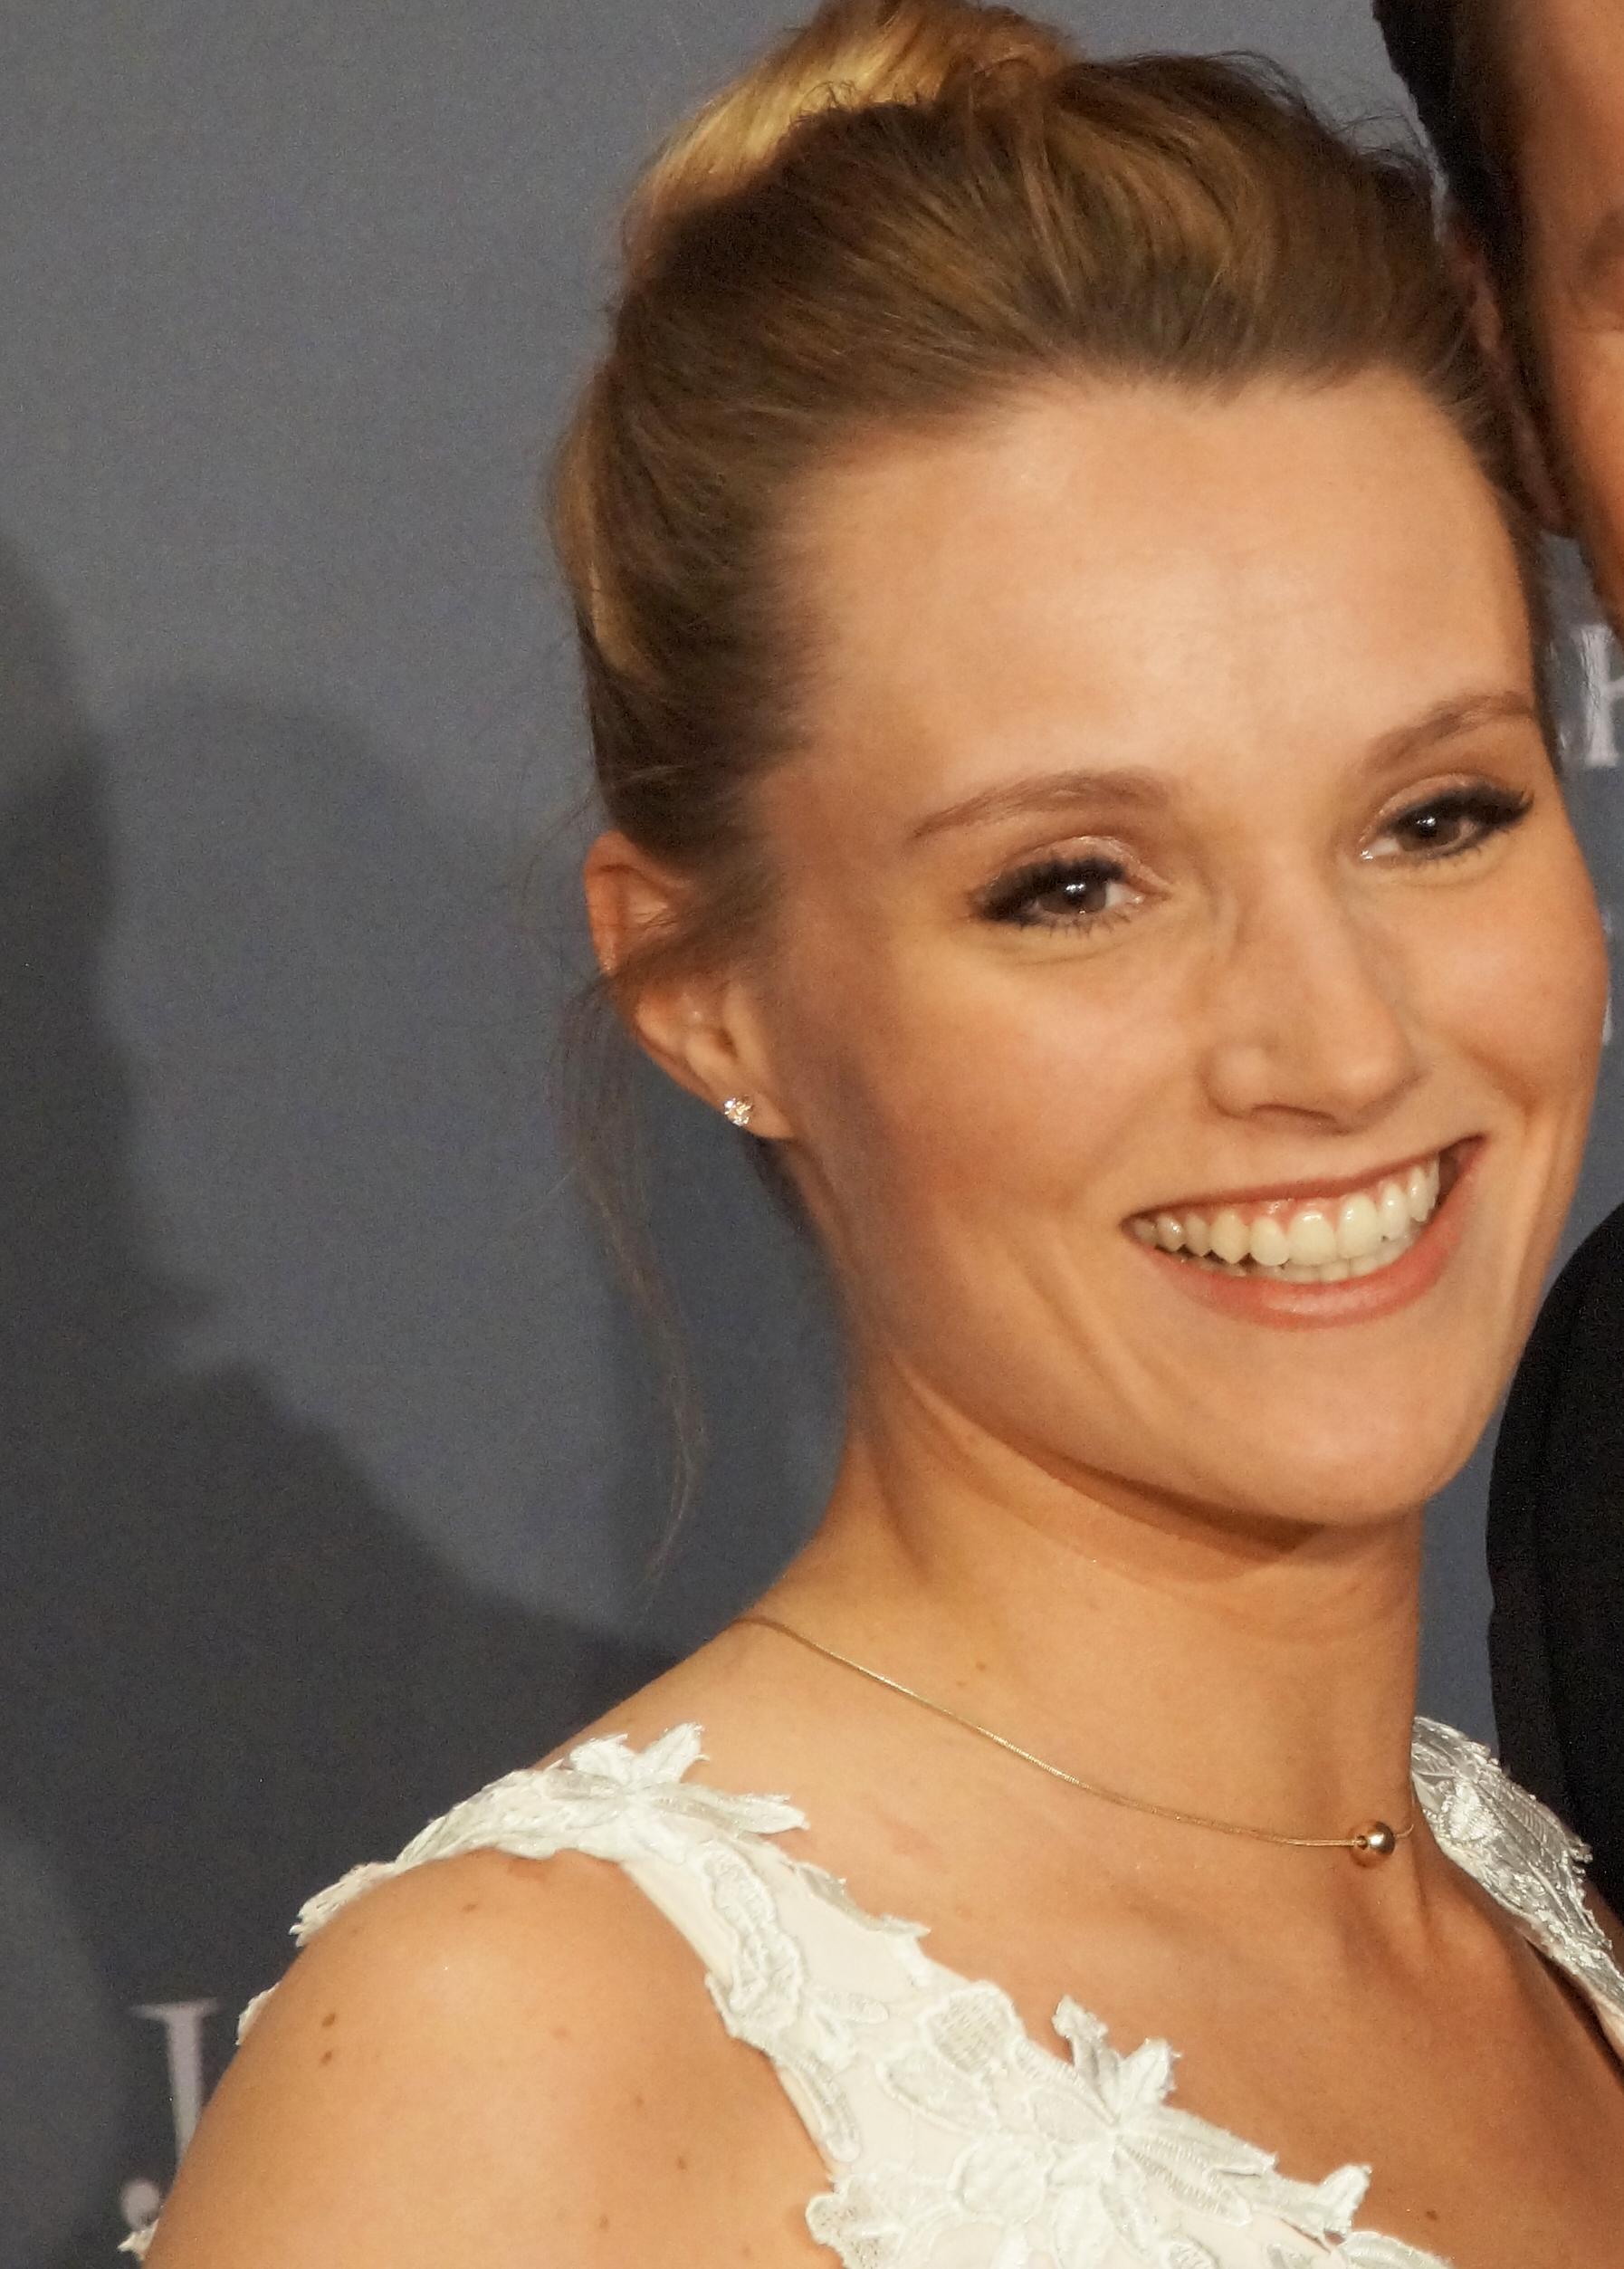 The 31-year old daughter of father (?) and mother(?) Anna Hofbauer in 2020 photo. Anna Hofbauer earned a million dollar salary - leaving the net worth at million in 2020